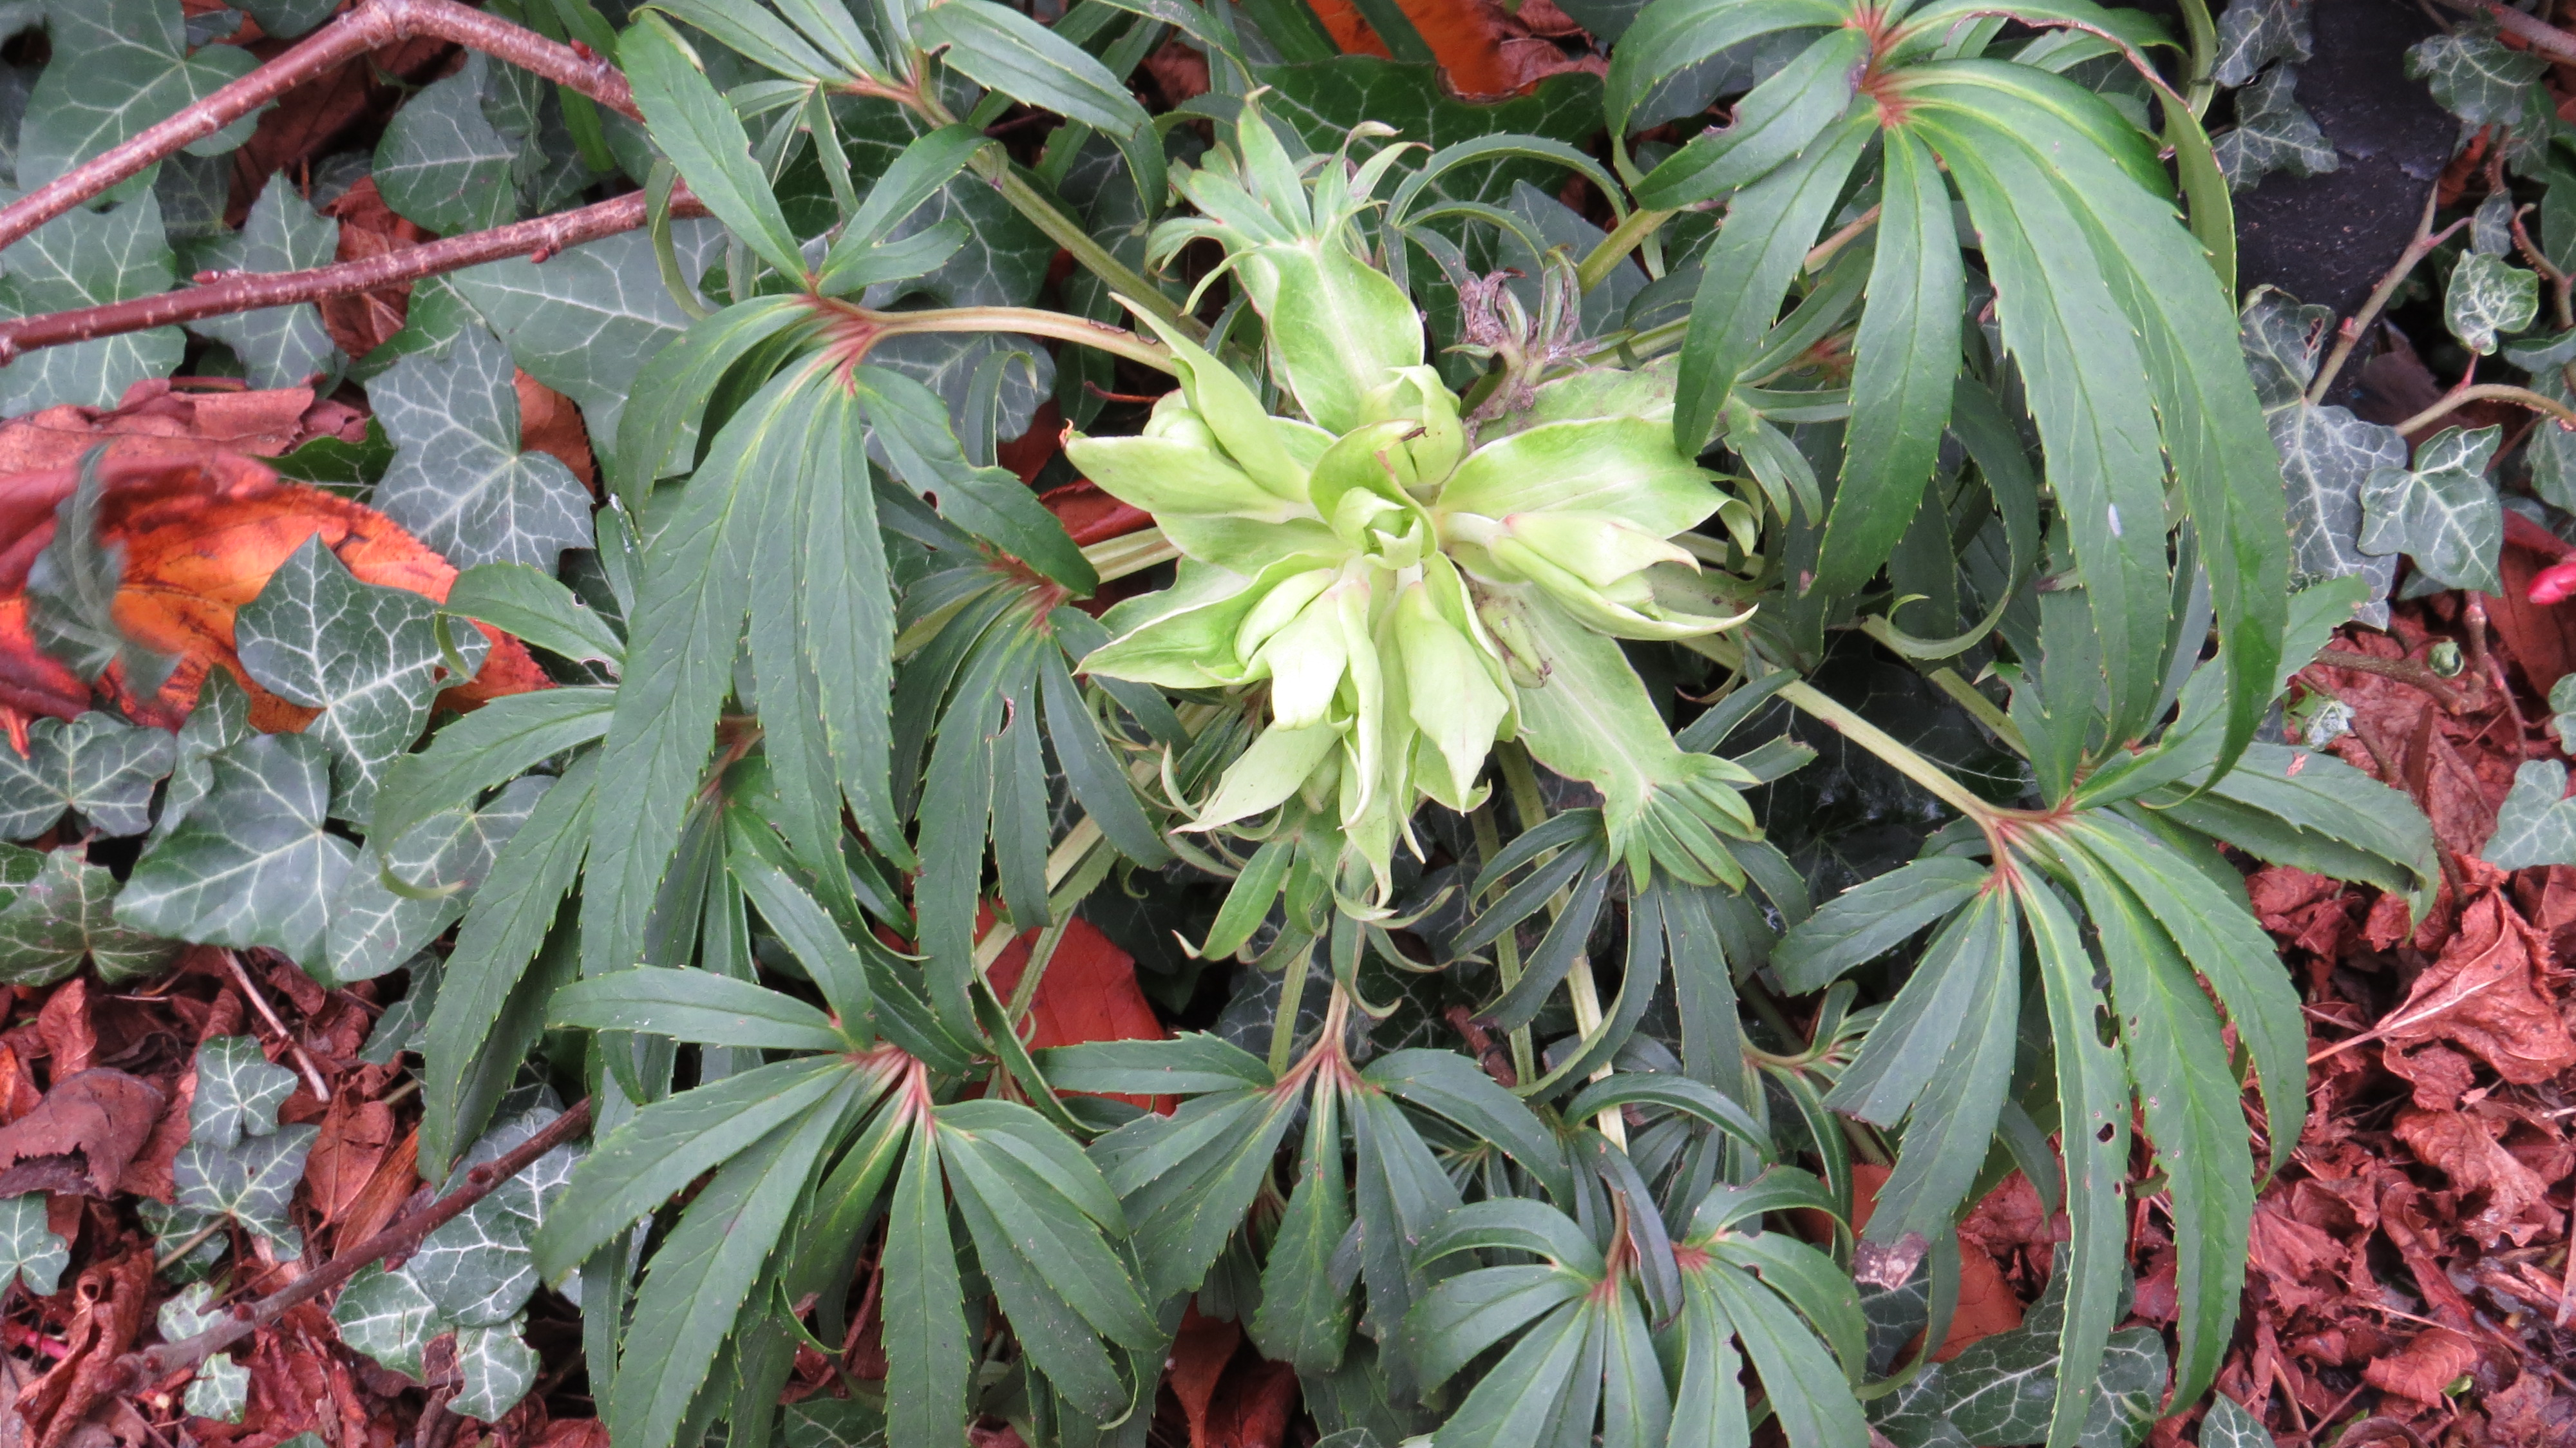 Wednesday Weed Stinking Hellebore Bug Woman Adventures In London